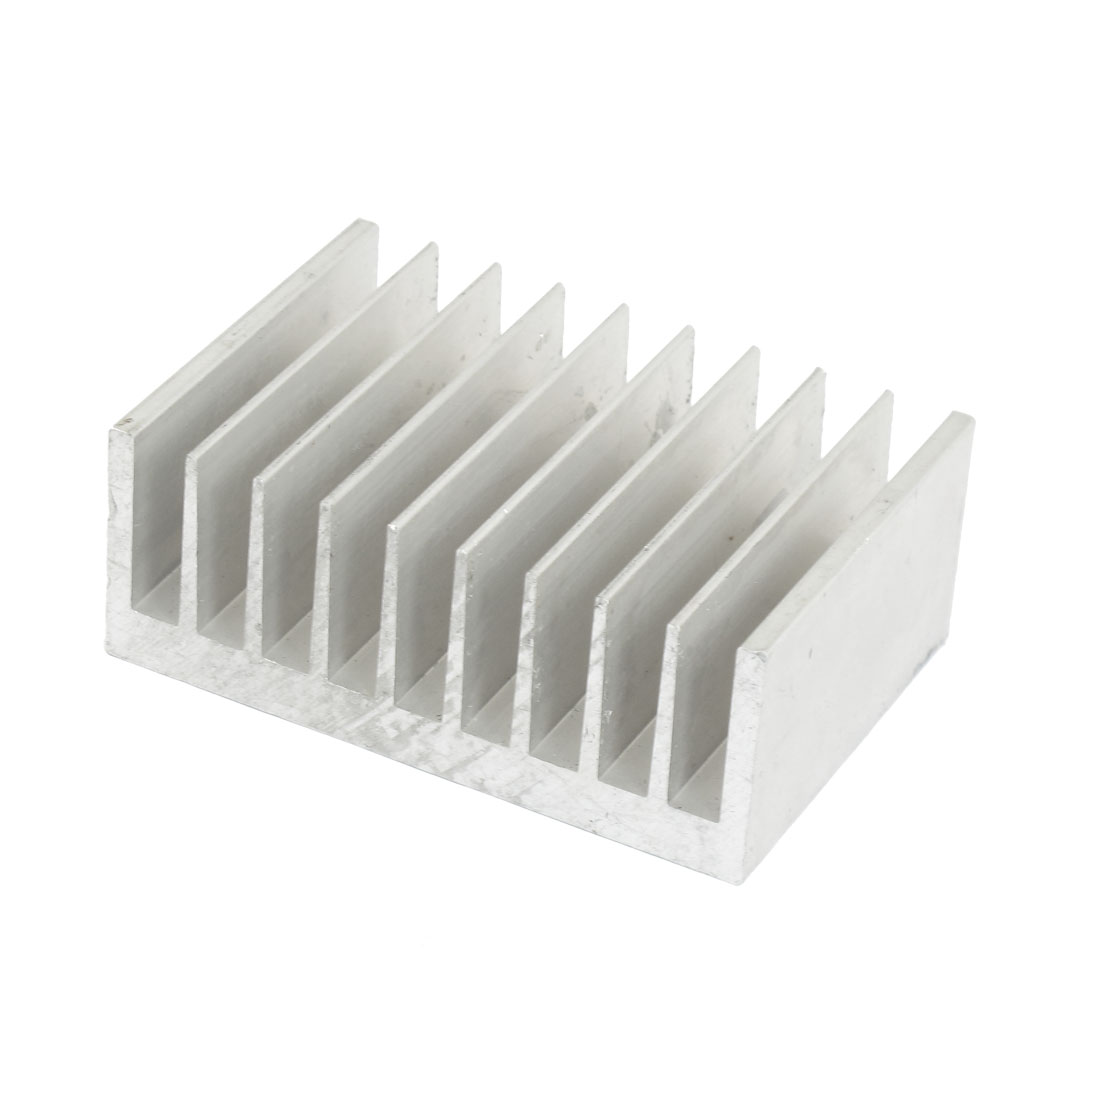 79mm x 54mm x 30mm Heatsink Heat Dissipate Cooling Fin